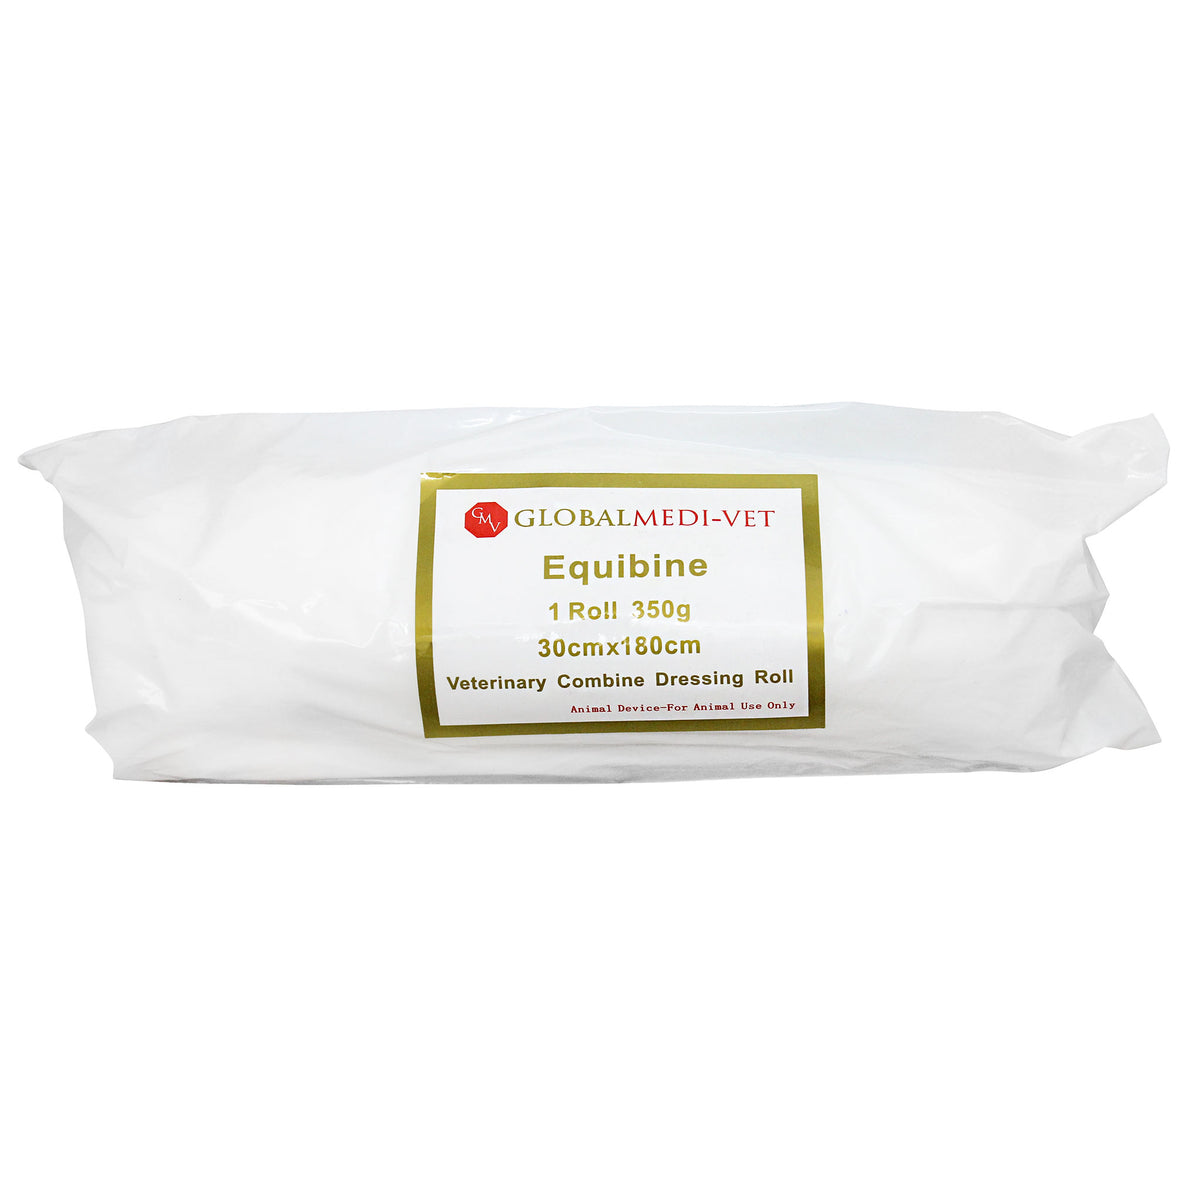 GMV Equibine Veterinary Combine Dressing Roll